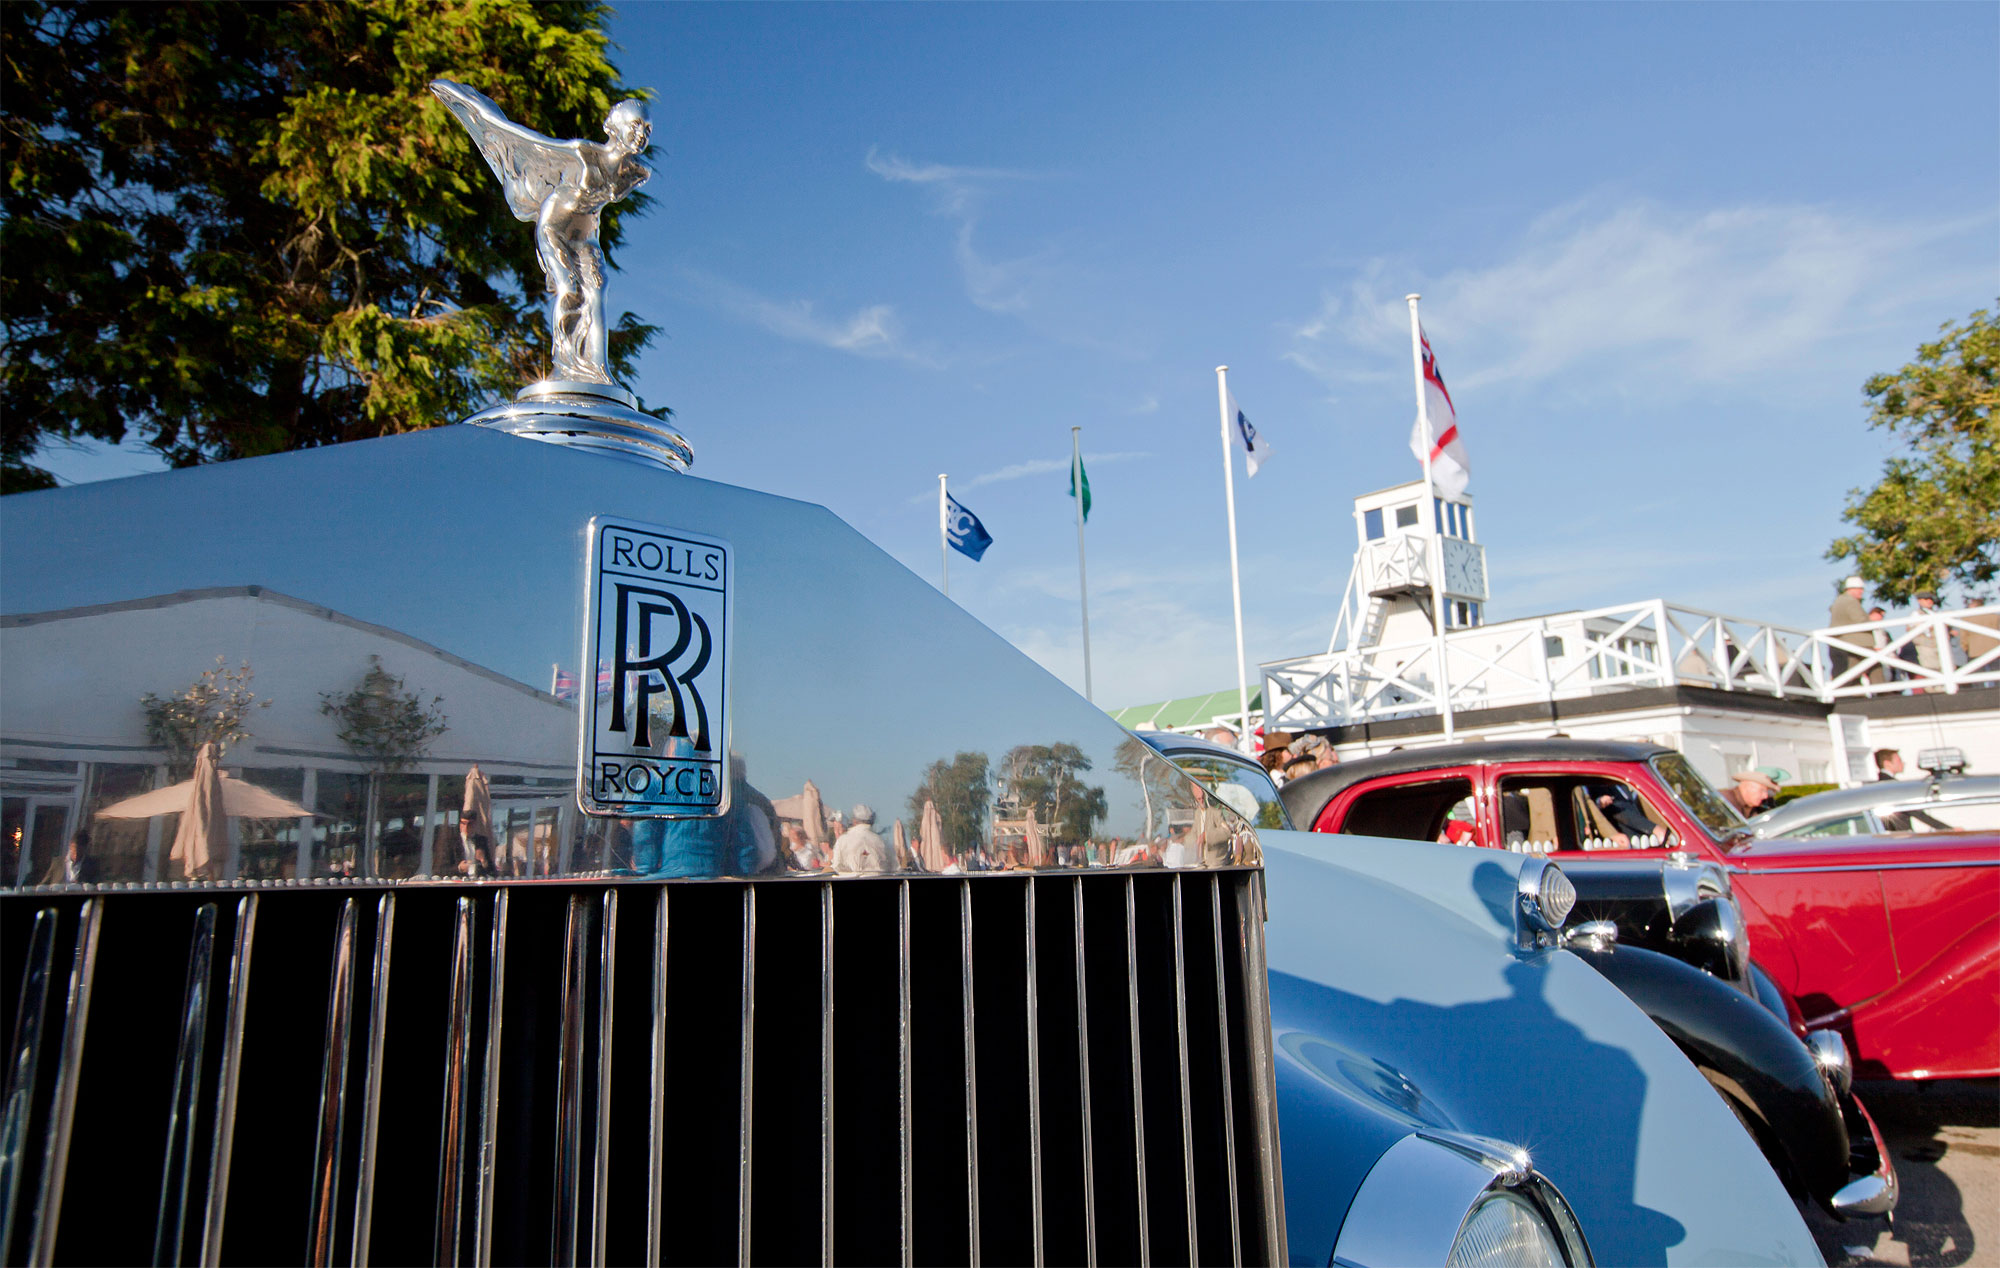 Rolls-Royce Motor Cars once again, wowed the crowds at the Goodwood Revival with a stunning collection of cars from their illustrious past and the present day